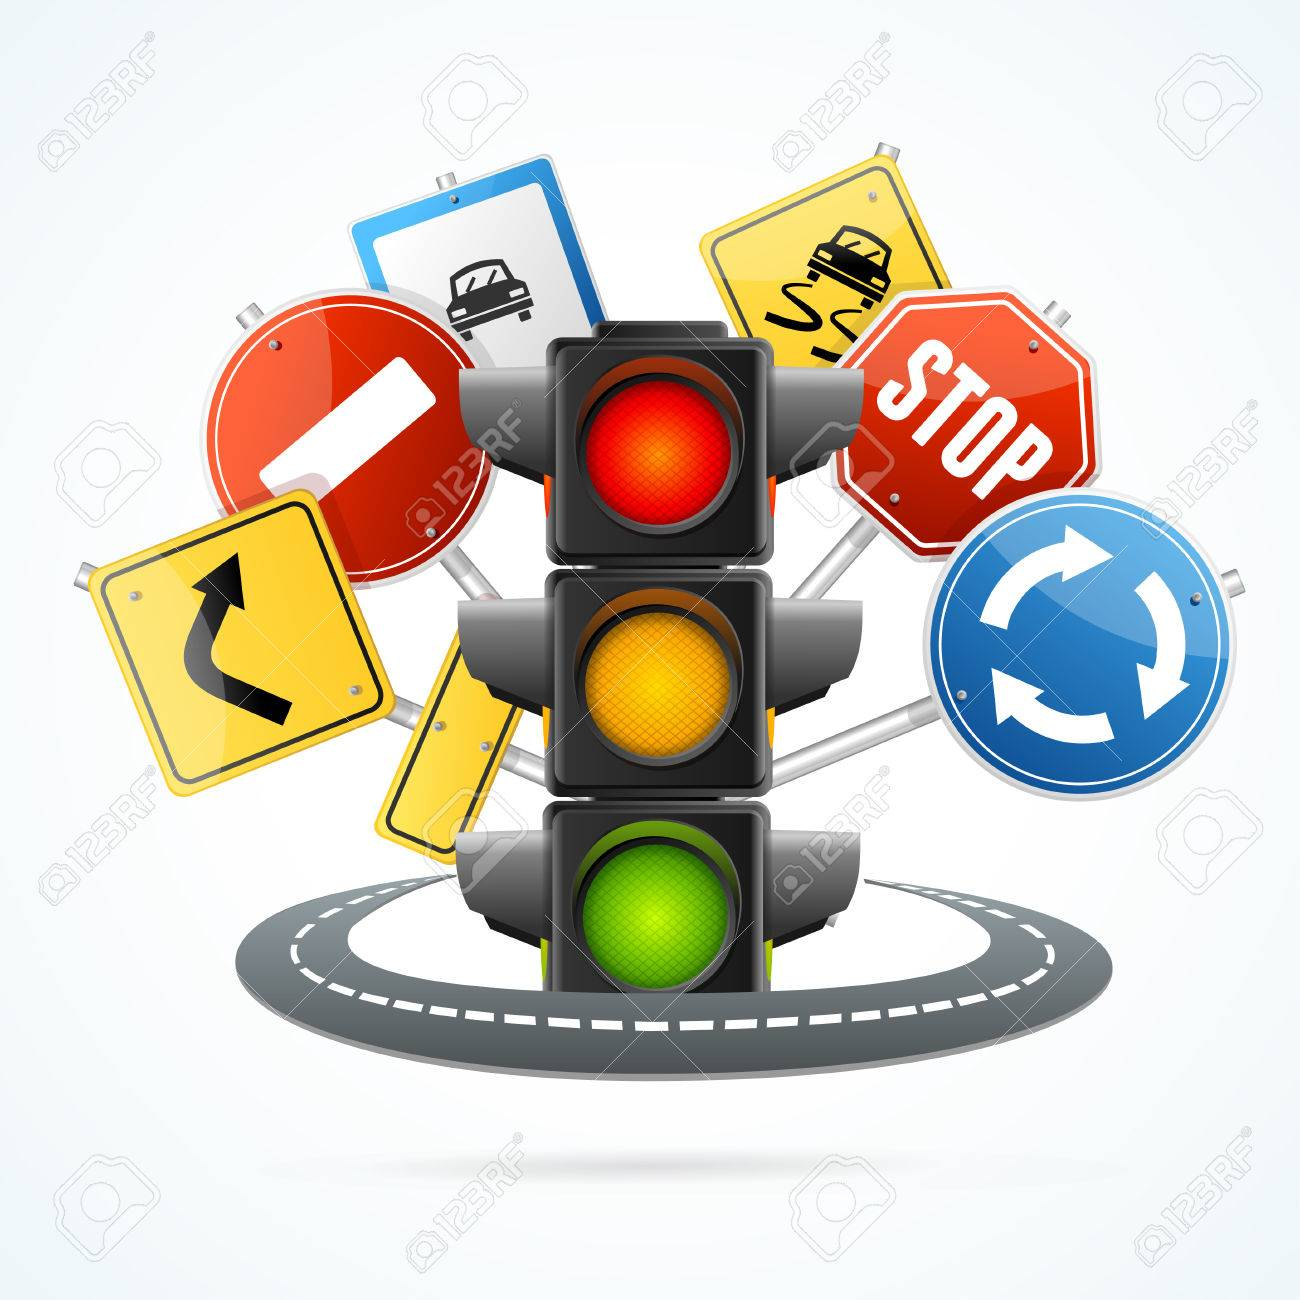 Traffic Light and Road Sign Concept. - 52132280